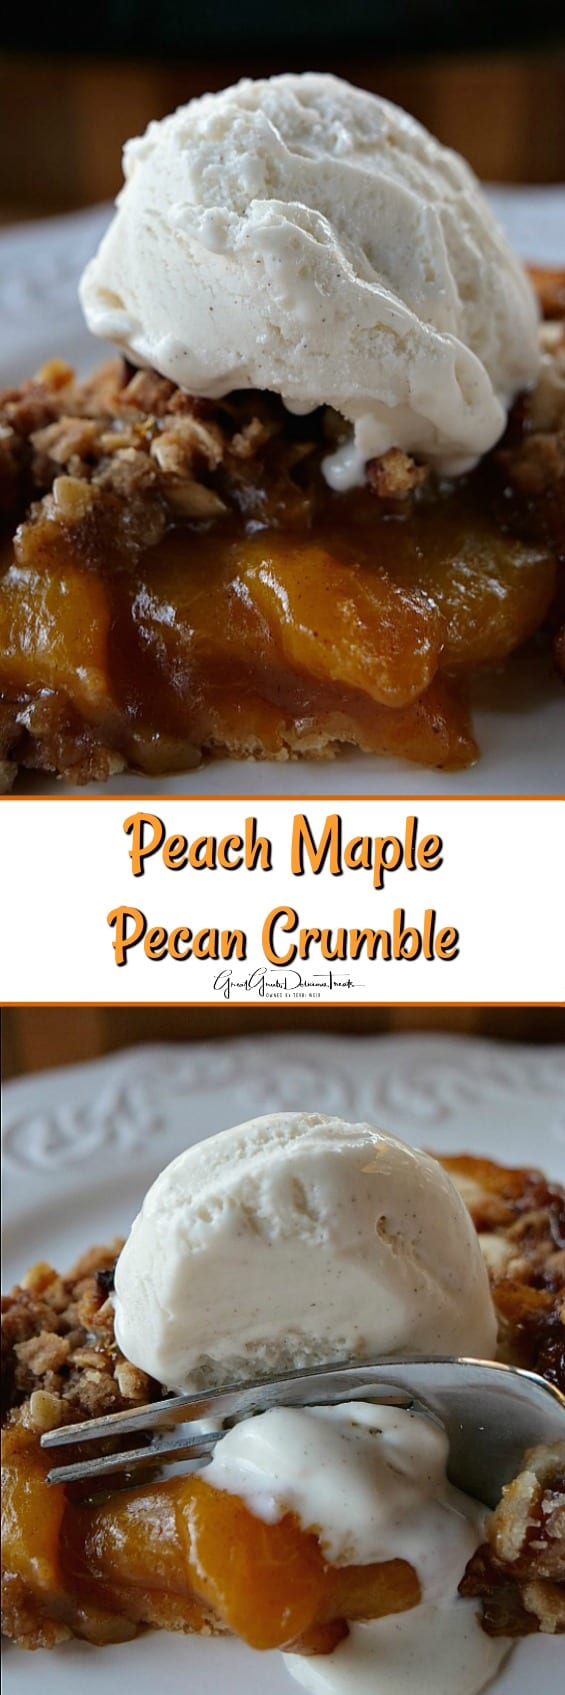 Peach Maple Pecan Crumble